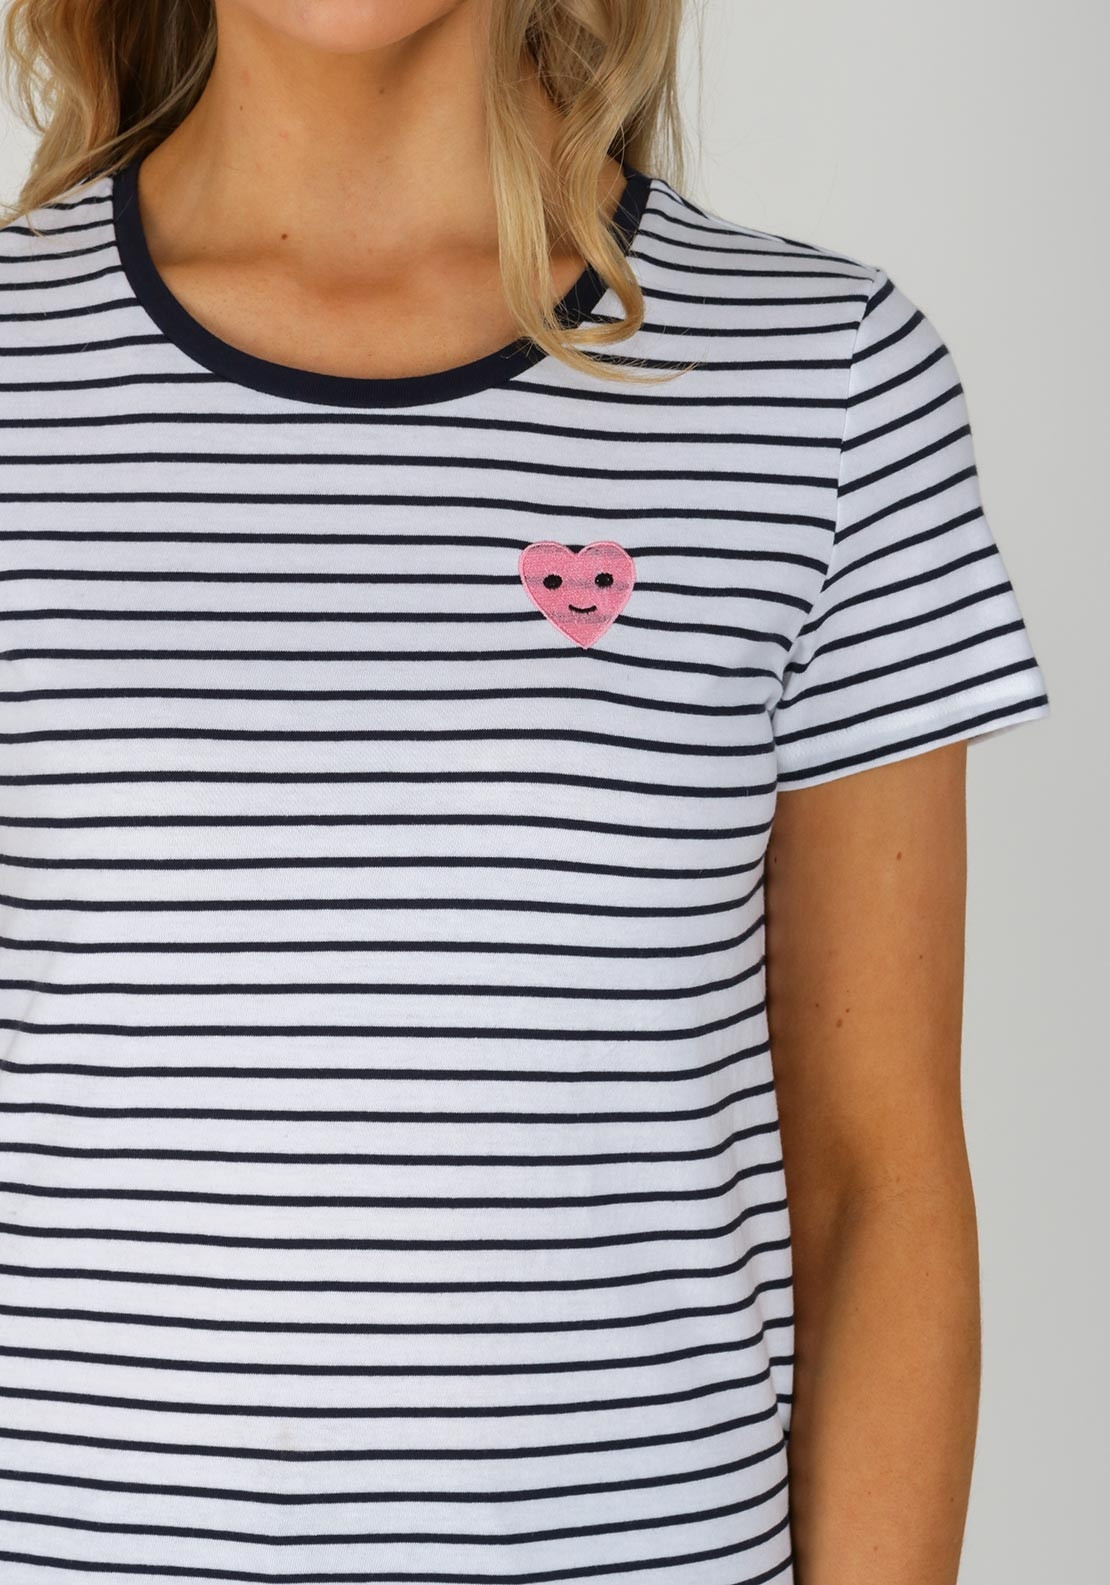 a4cf12f8cc Only Cos Striped Heart T-Shirt, Navy. Be the first to review this product